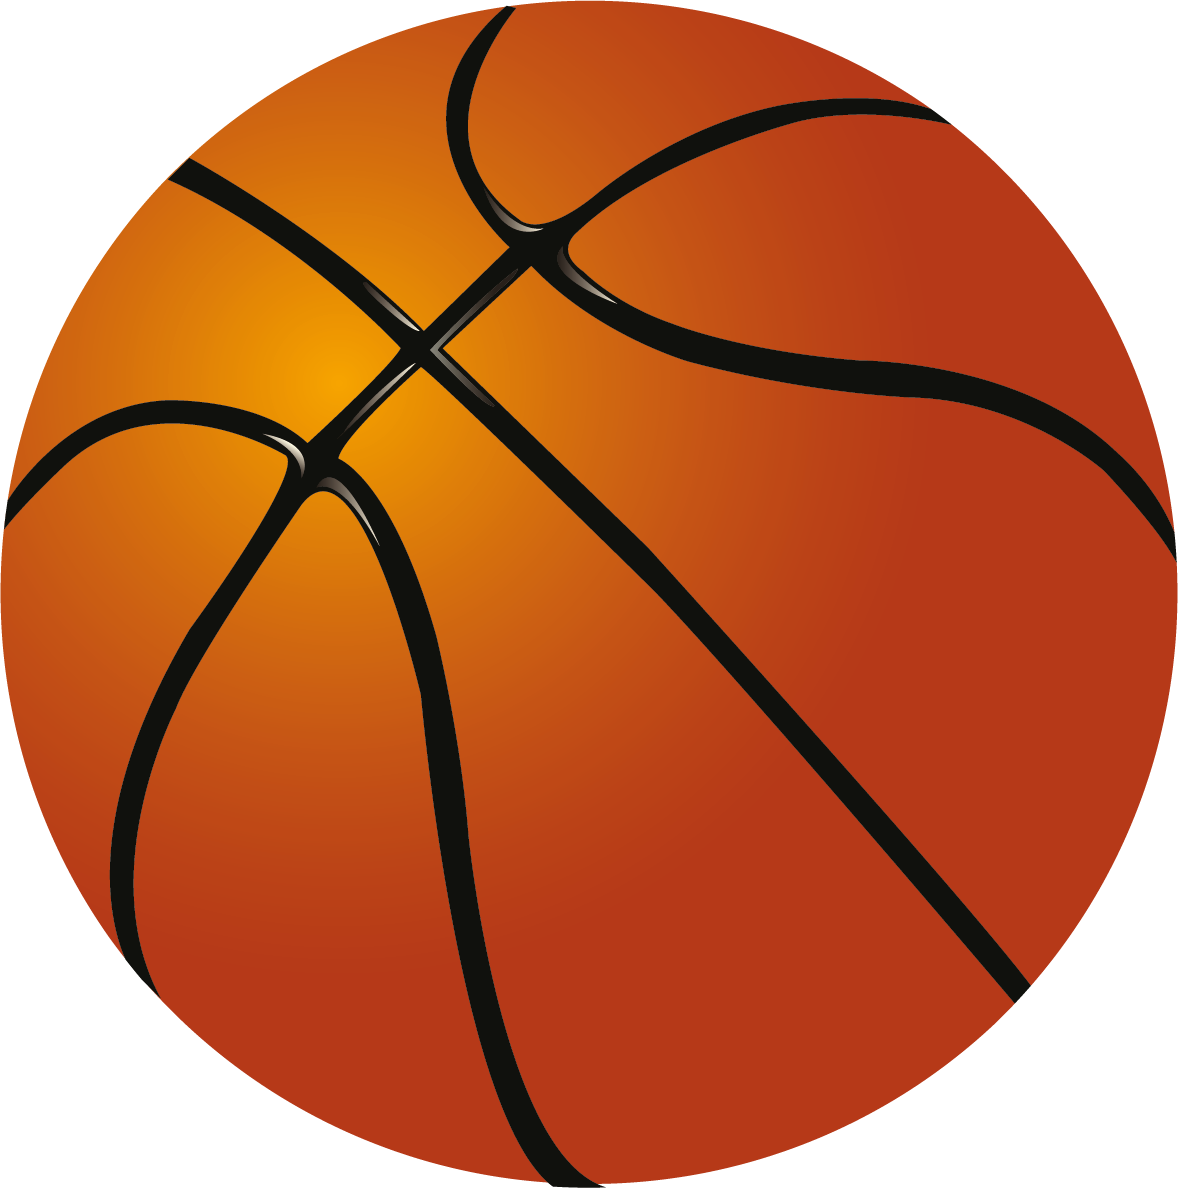 Heart shape basketball clipart black and white picture freeuse ball - Buscar con Google | Niños | Pinterest | Basketball clipart ... picture freeuse